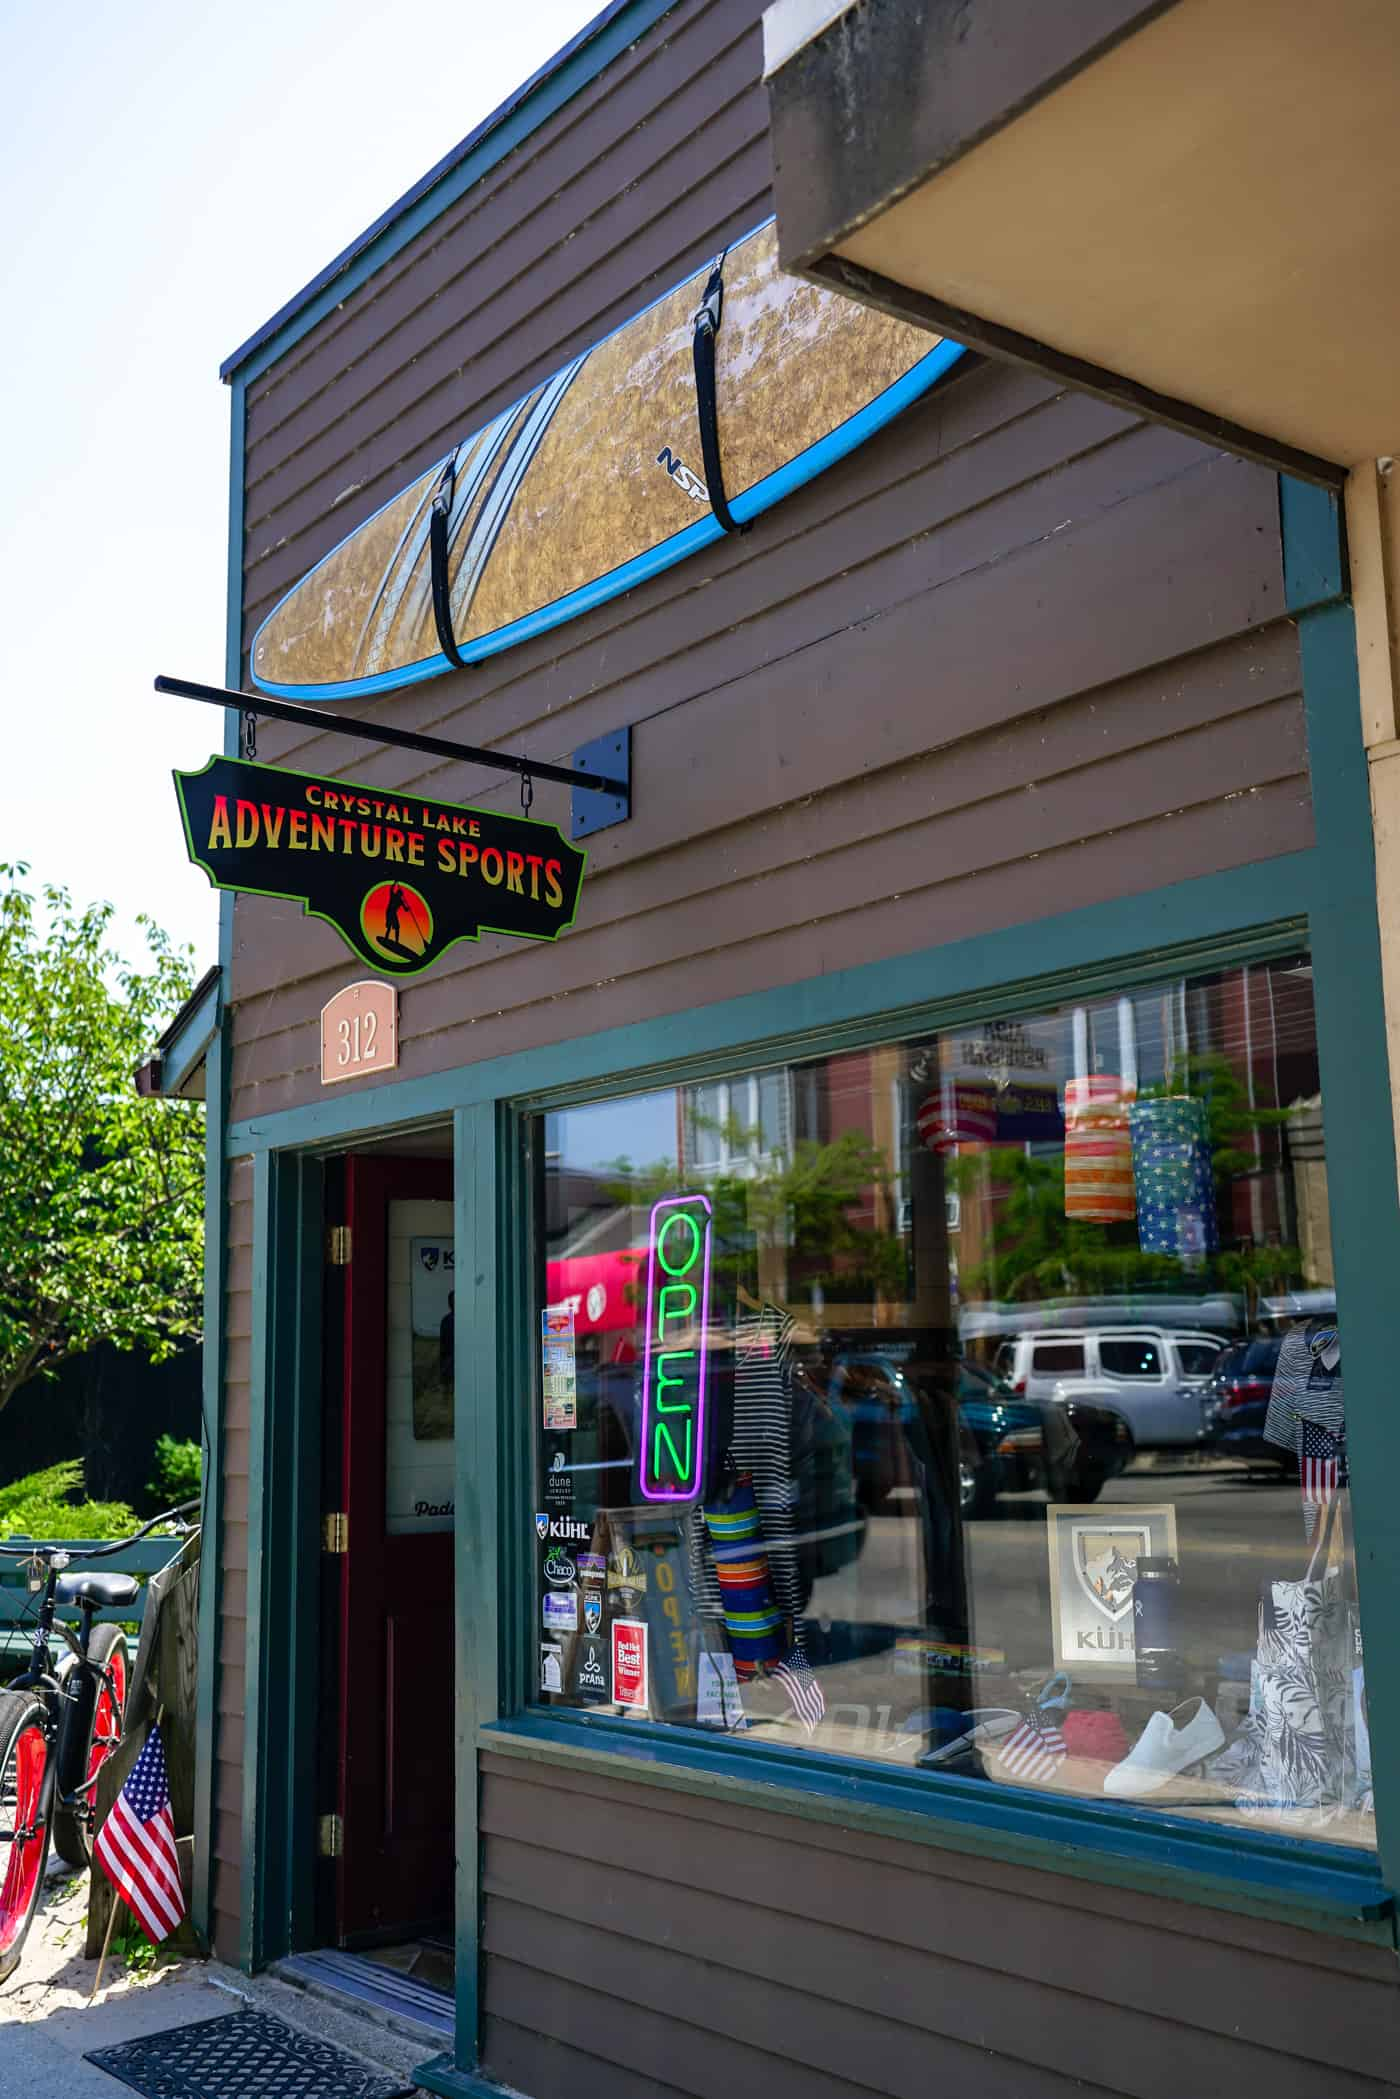 Crystal Lake Adventure Sports in downtown Frankfort Michigan